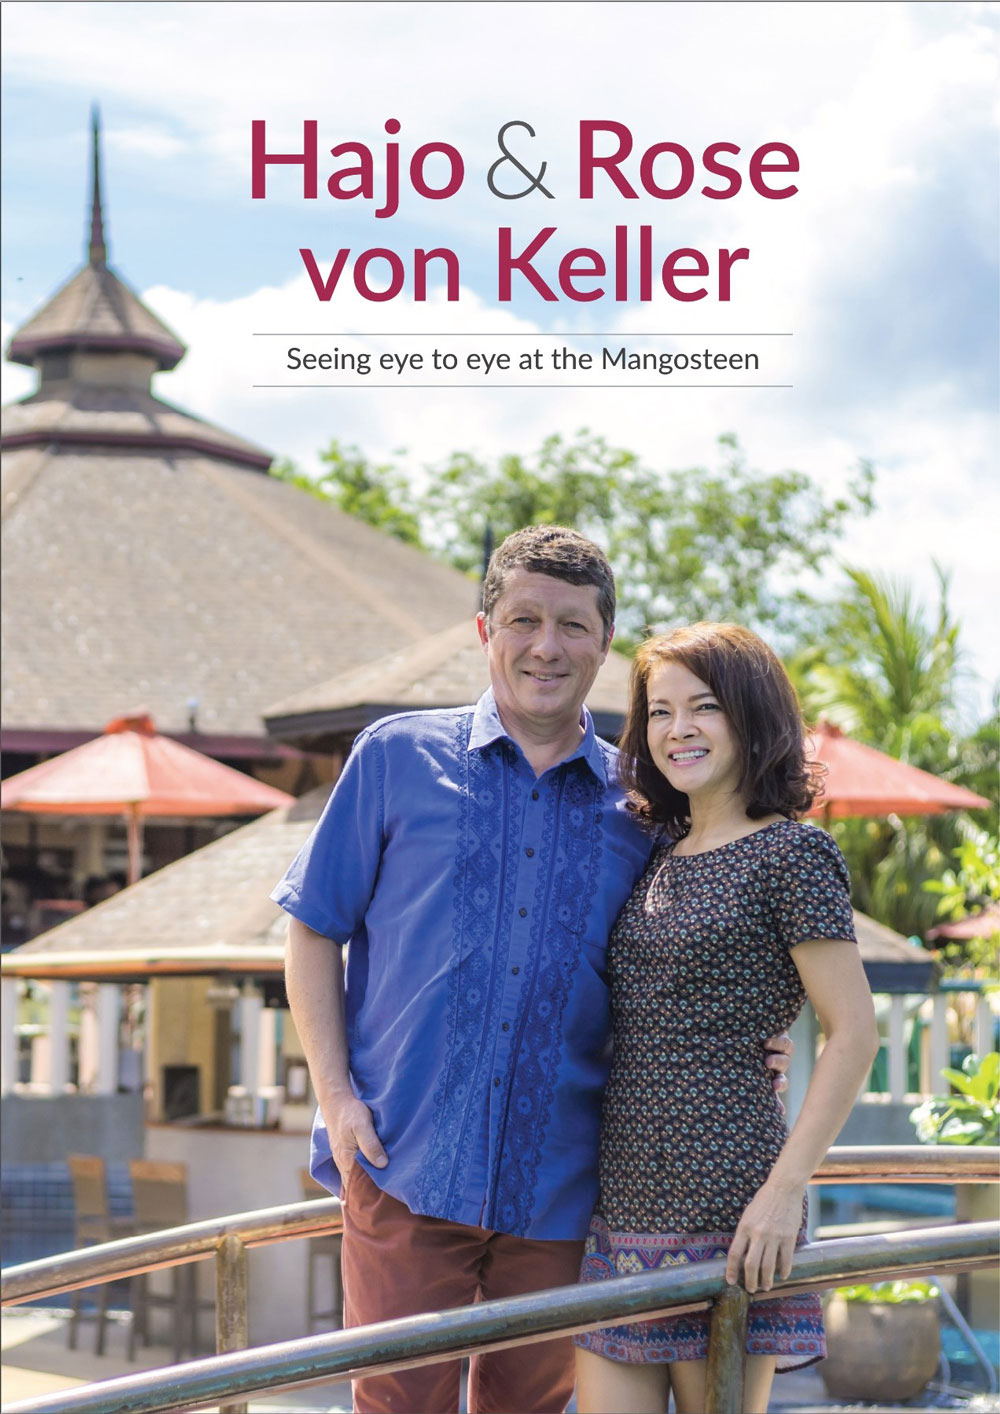 Hajo and Rose von Keller, owners and managing directors of Mangosteen Ayurveda & Wellness Resort, Rawai, Phuket.